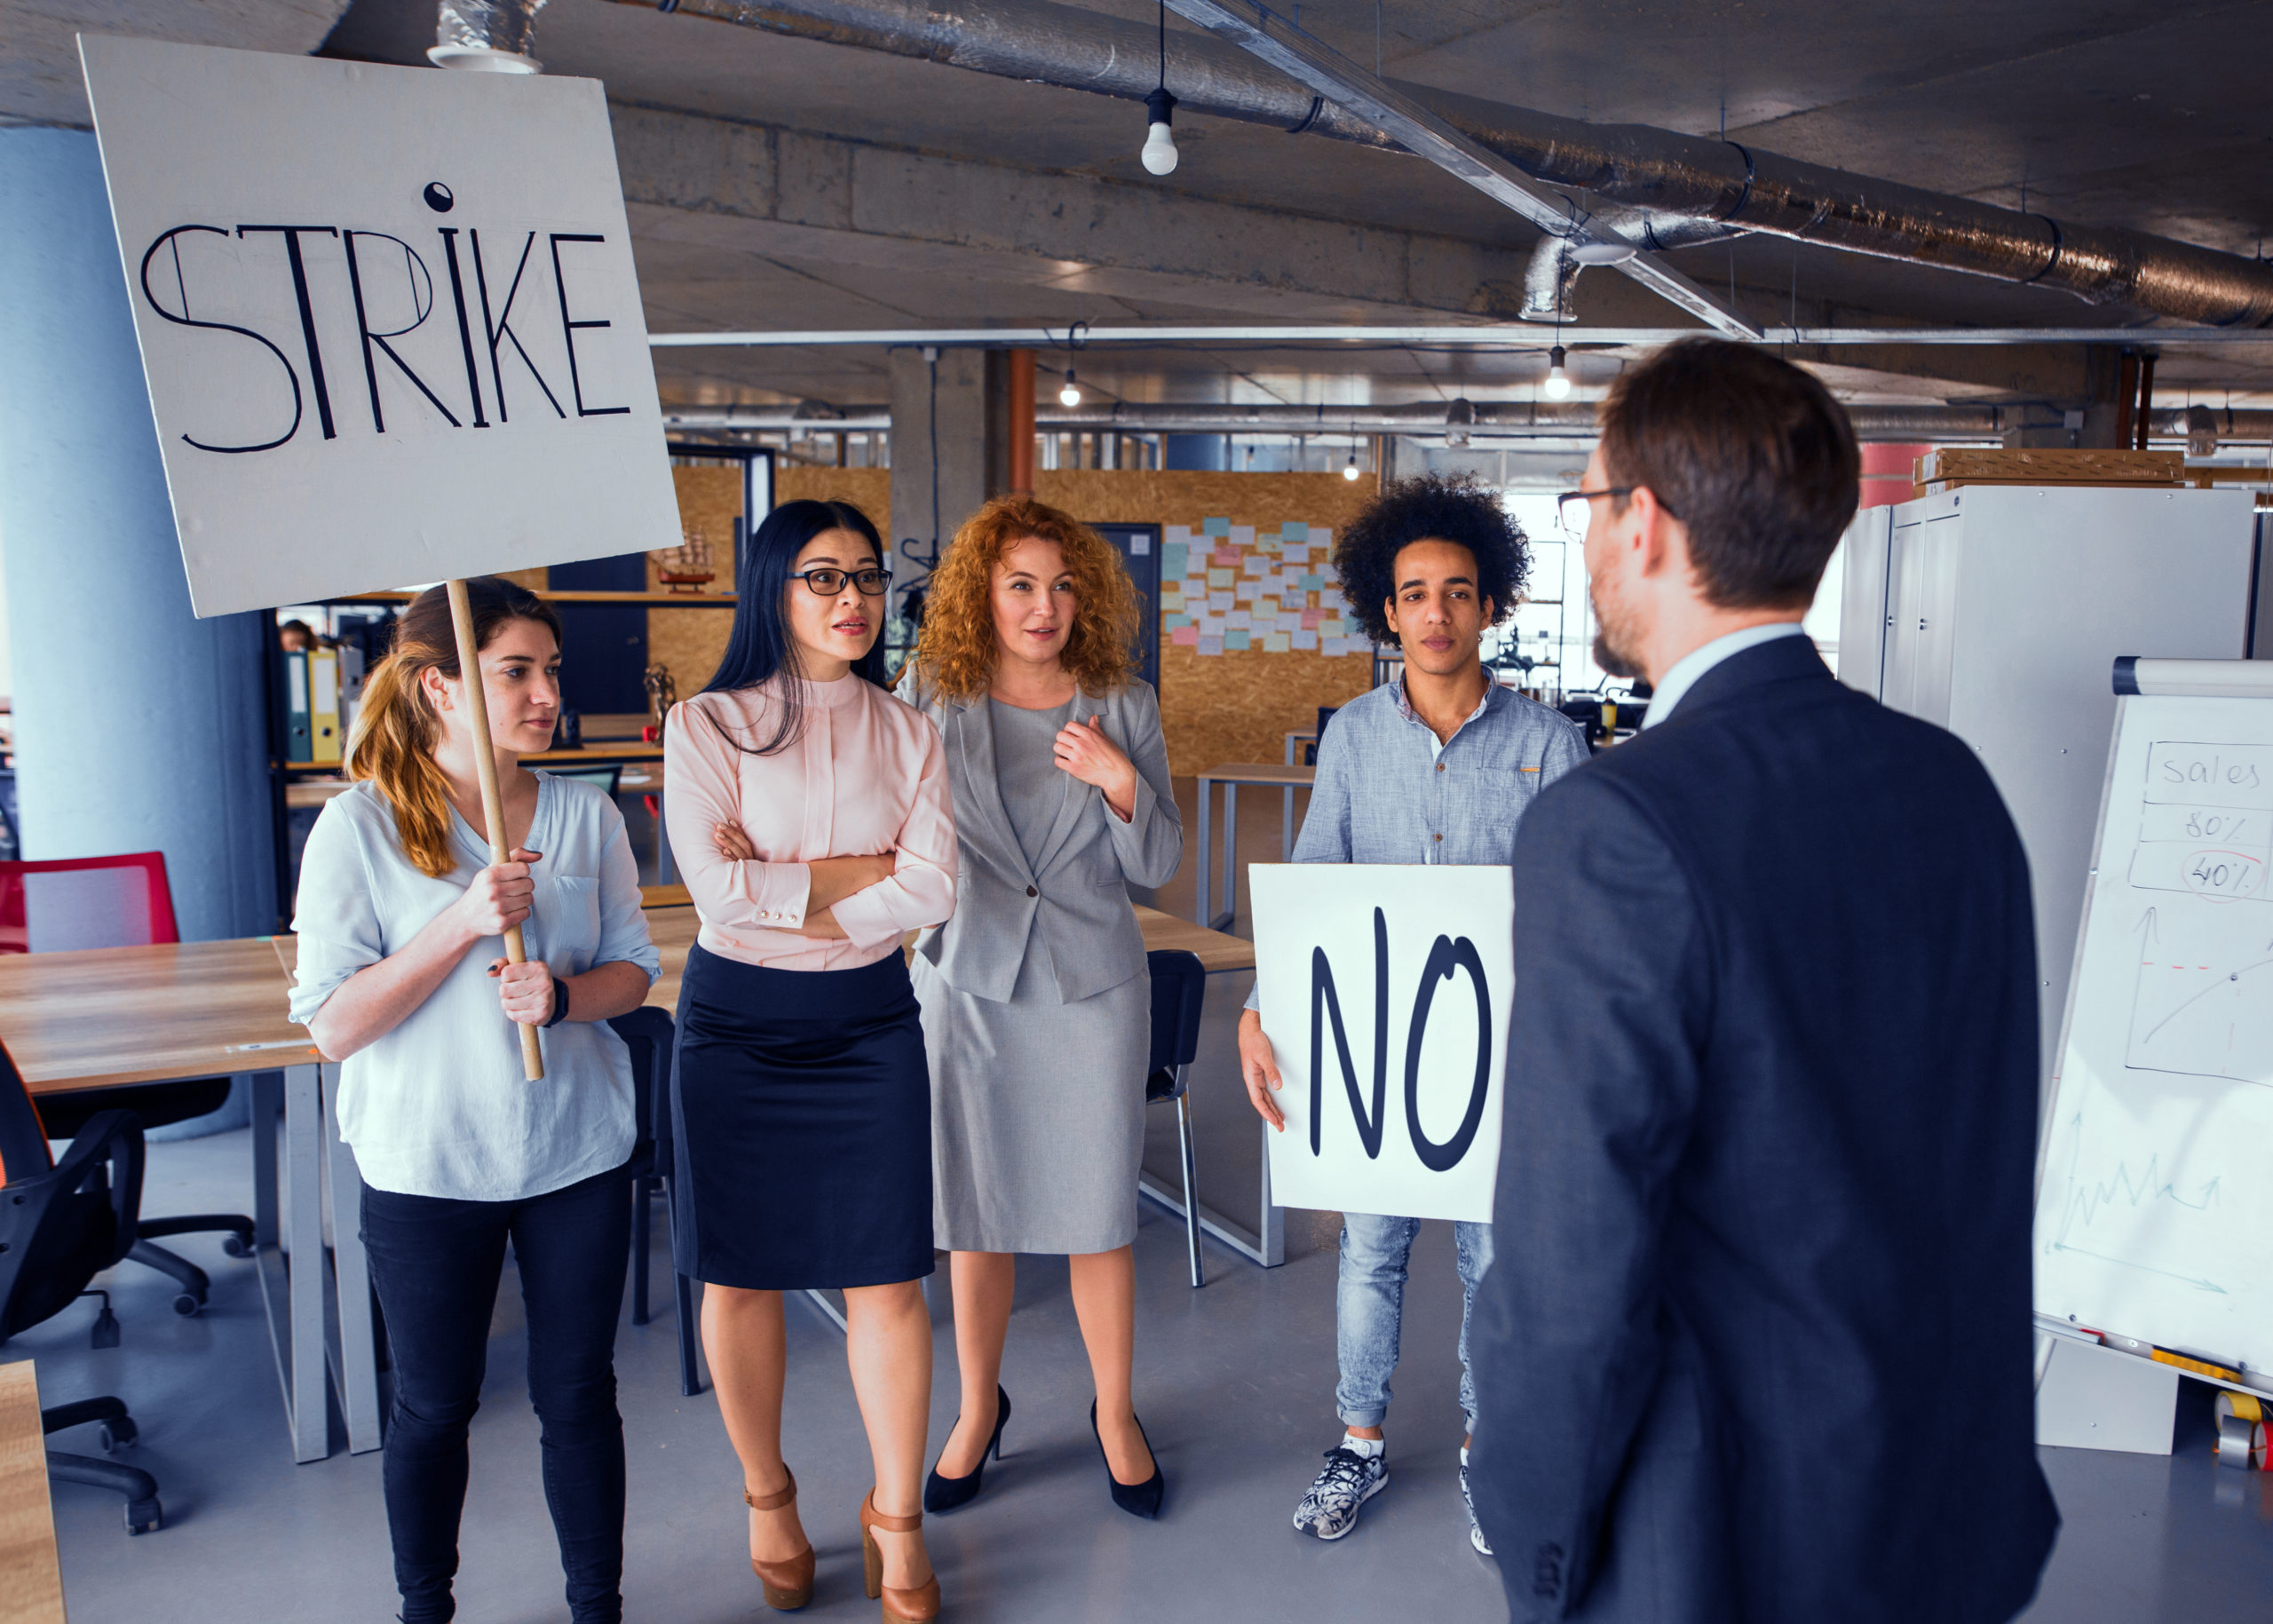 workers on strike, confronting manager, commercial rent freeze concept